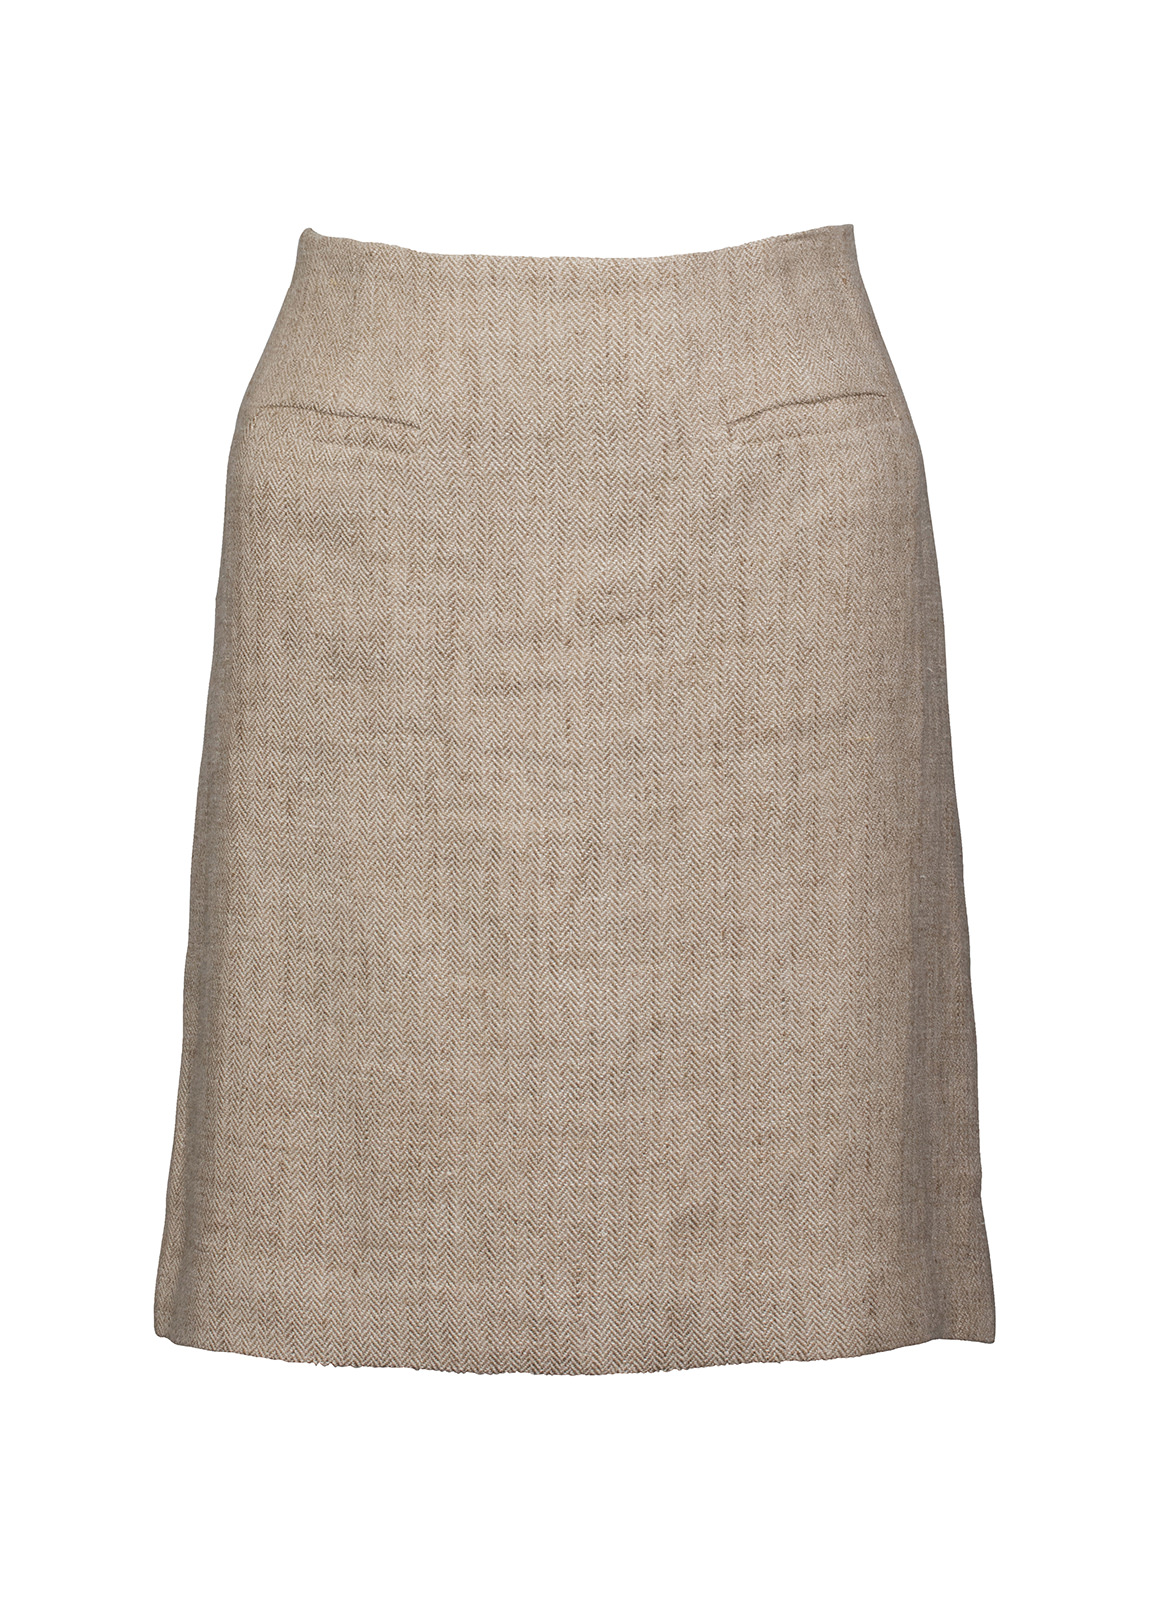 Dubarry_ Sunflower Linen Ladies Skirt - Oatmeal_Image_2